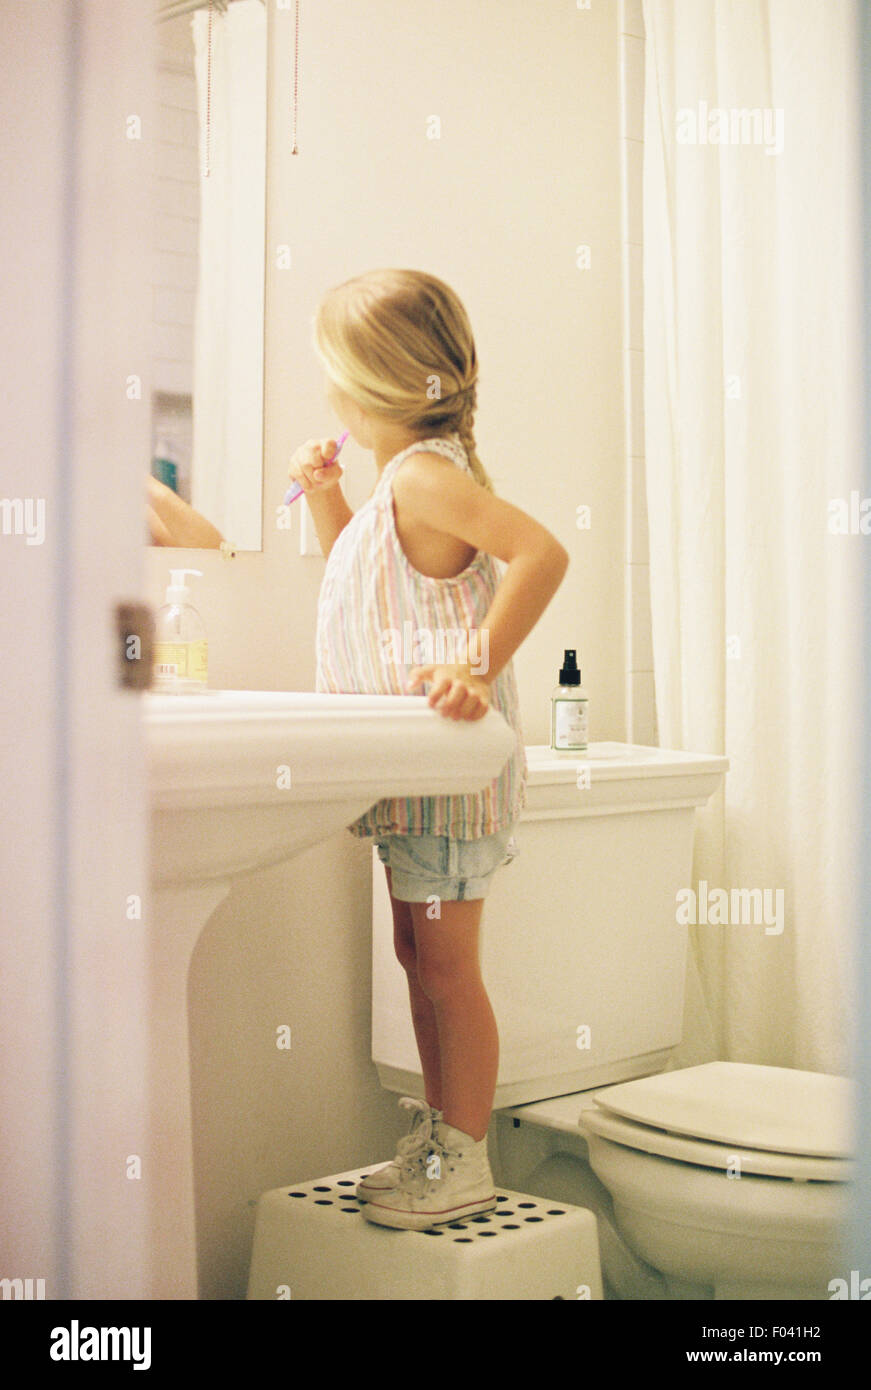 Young girl standing on a stool in a bathroom, brushing her teeth. - Stock Image